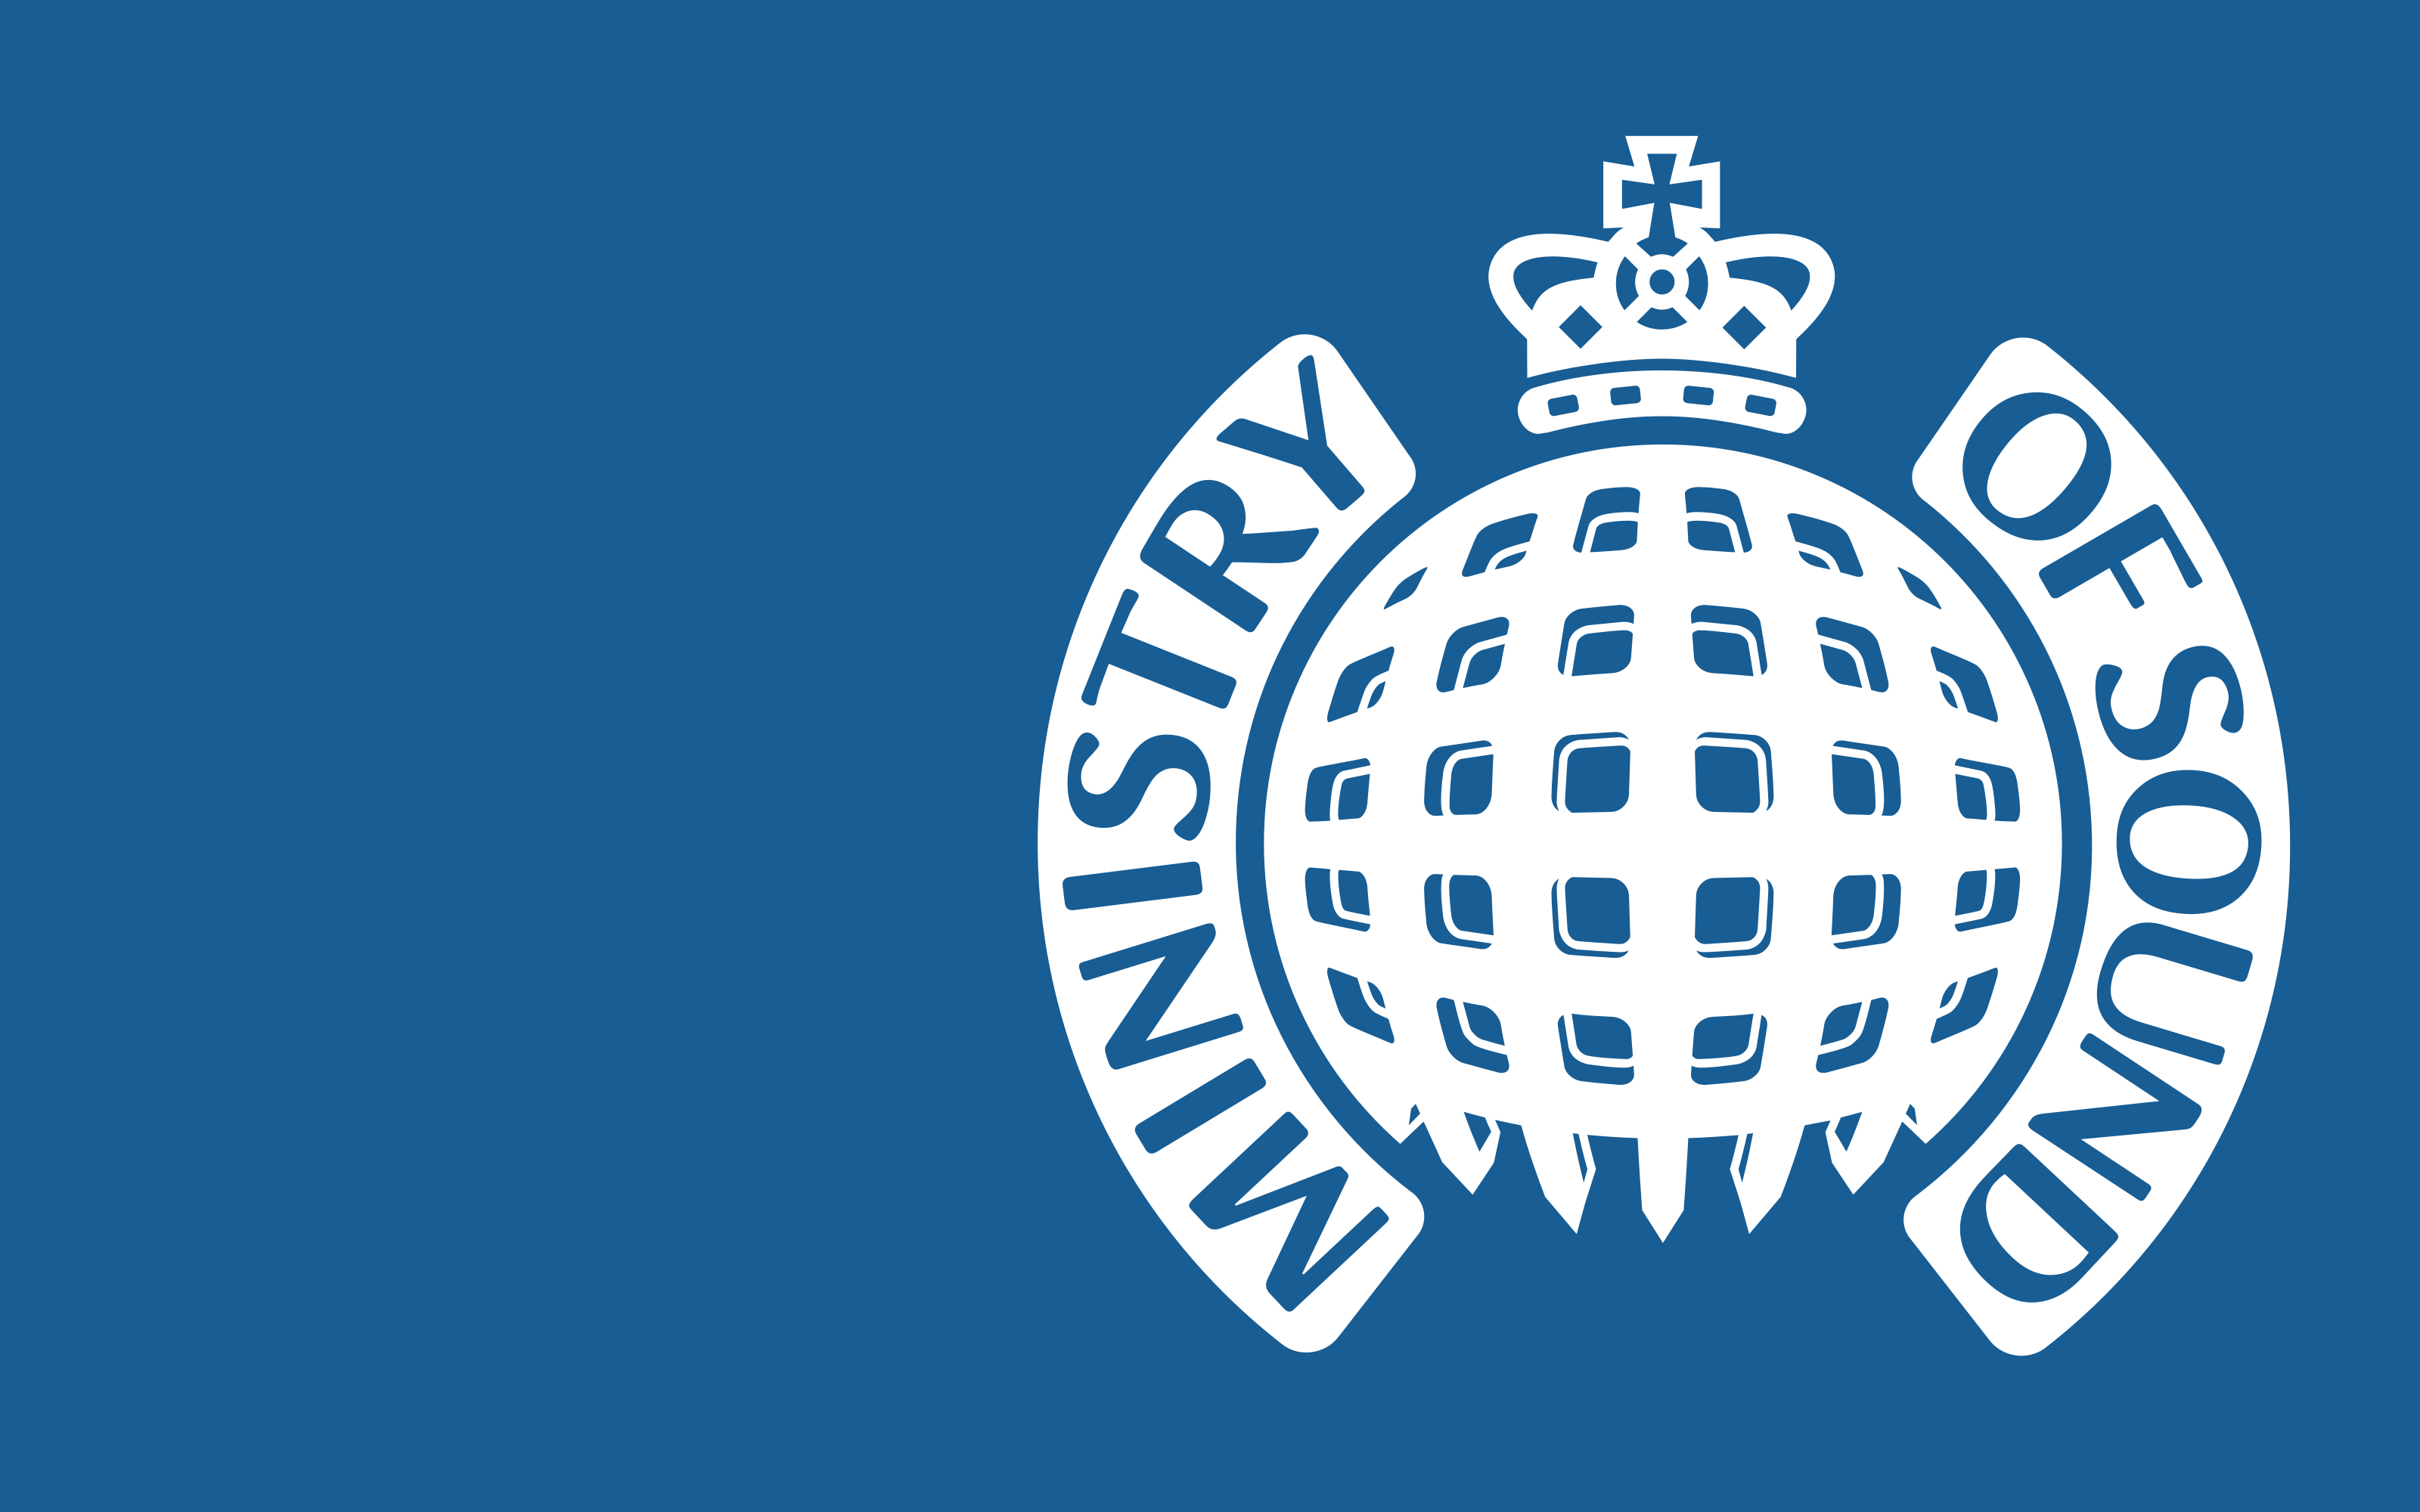 ministry of sound logo HD Wallpaper